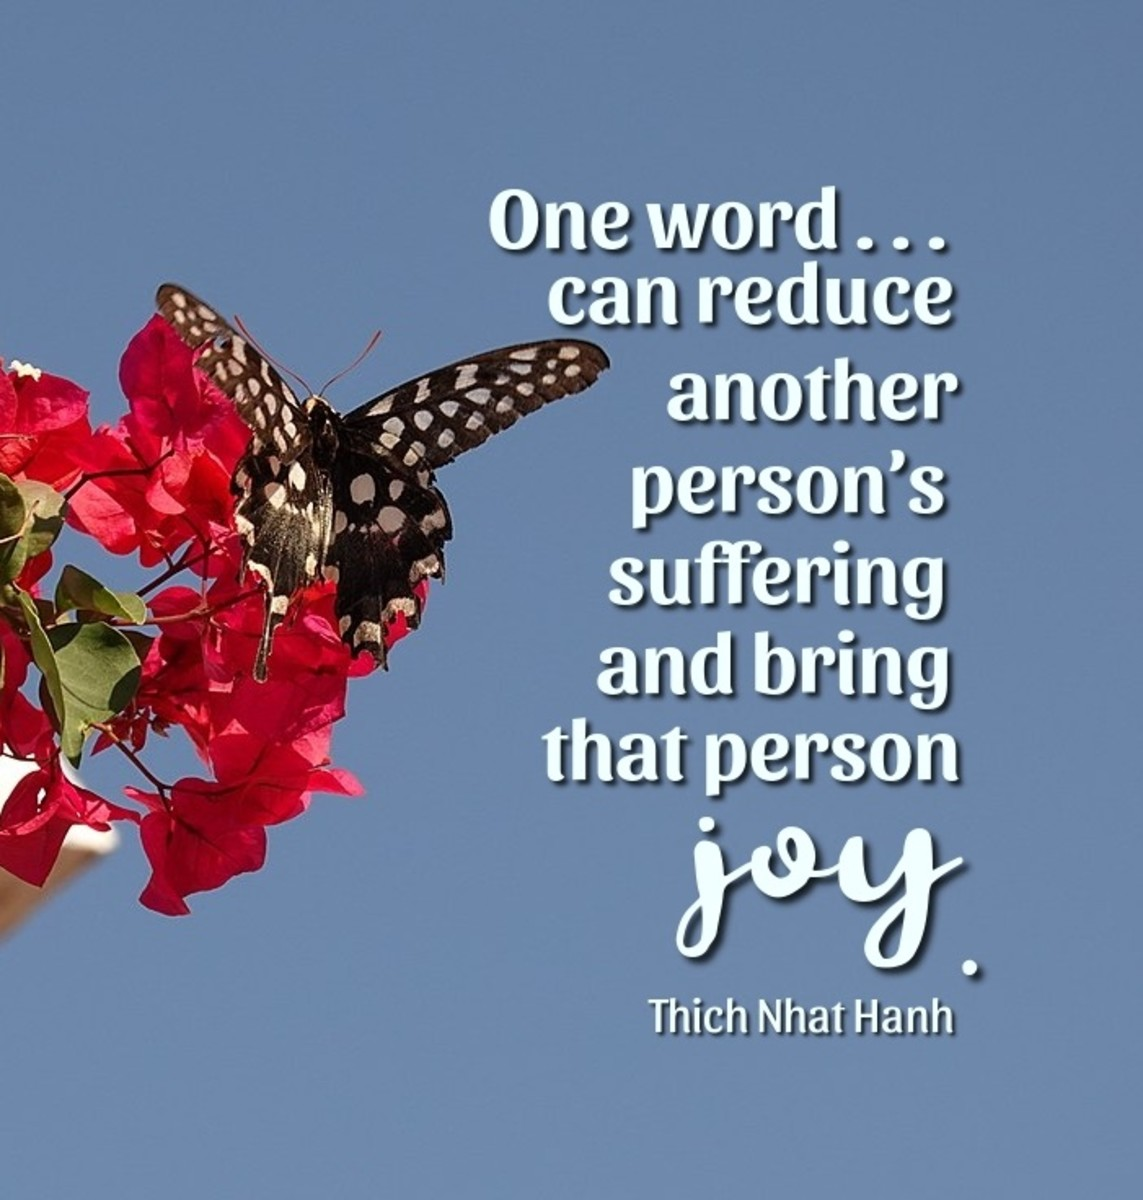 One word . . . can reduce another person's suffering and bring that person joy.